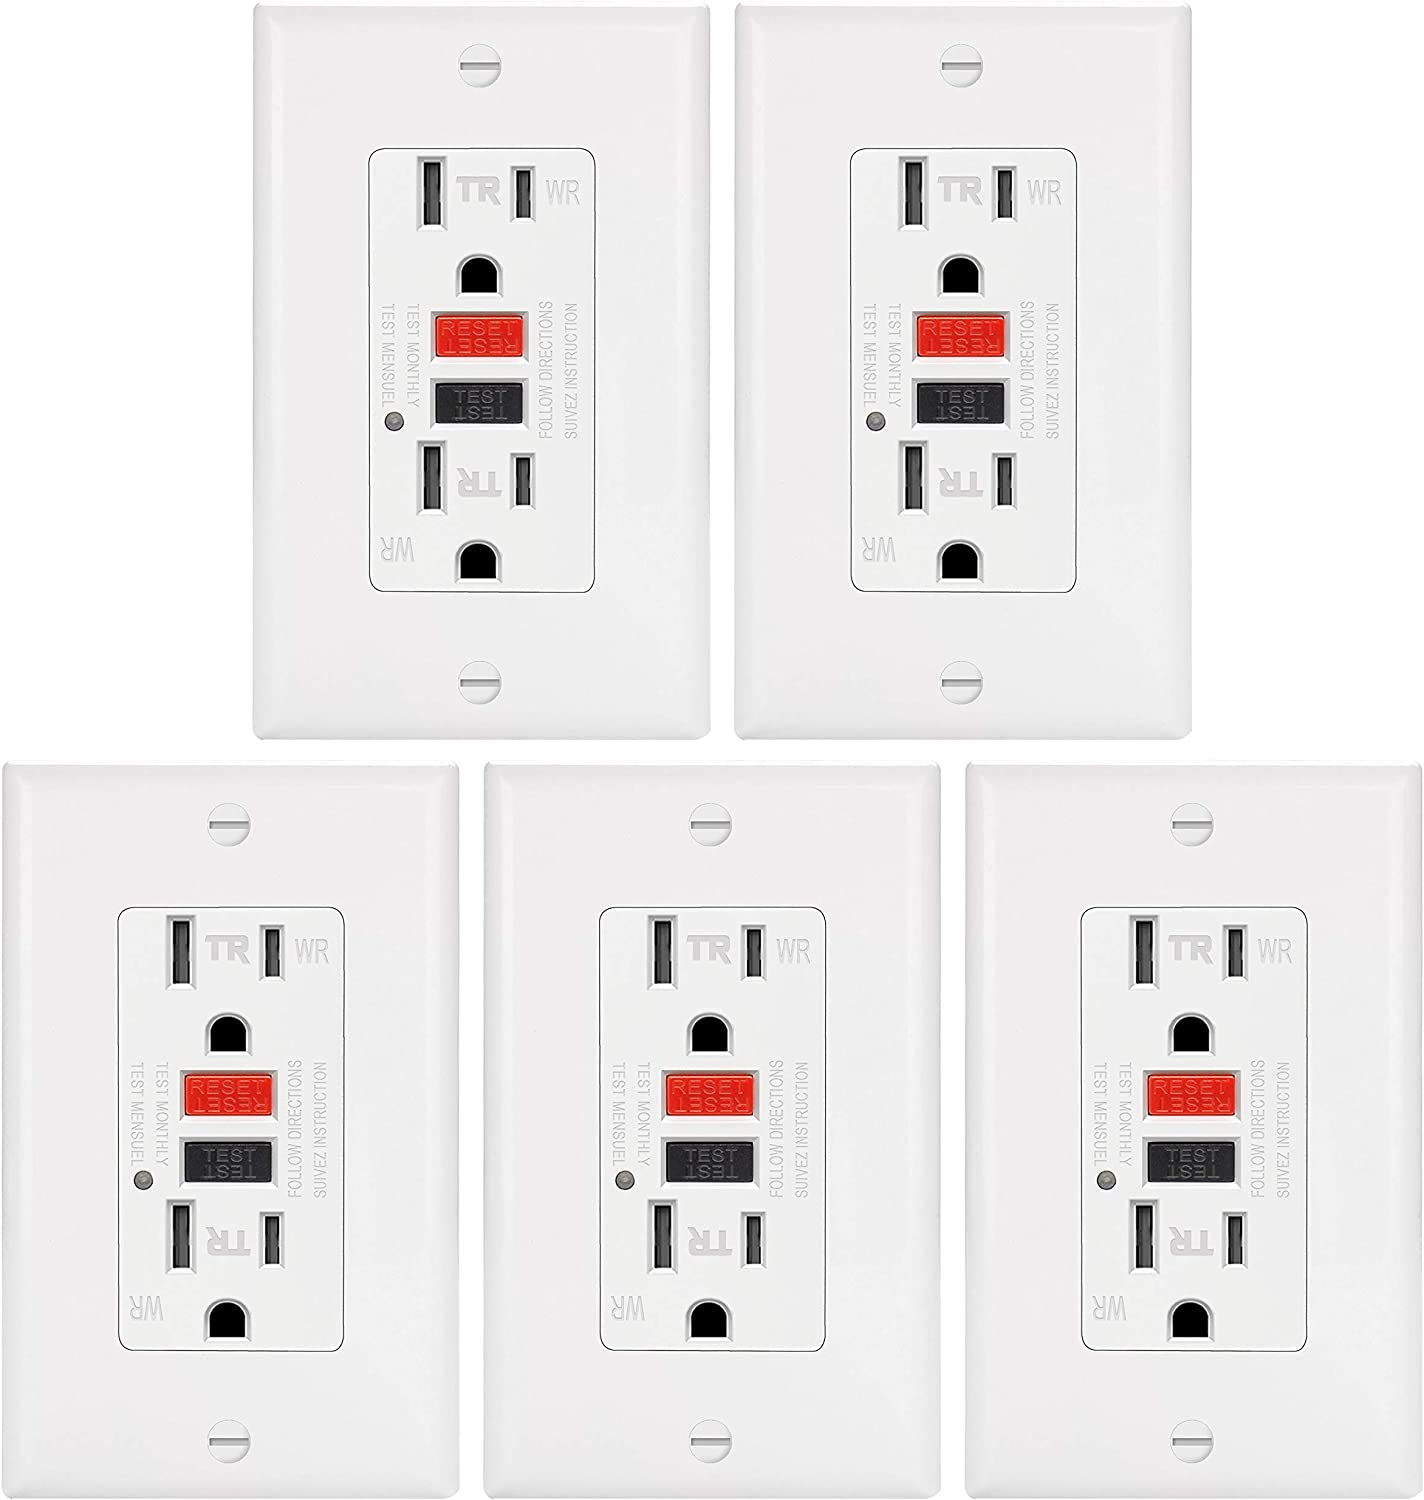 10 Pack 15A Weather Resistant GFCI Outlet by ELECTECK Decor Wall Plates and Screws Included Residential and Commercial White ETL Certified Tamper Resistant GFI Receptacle with LED Indicator